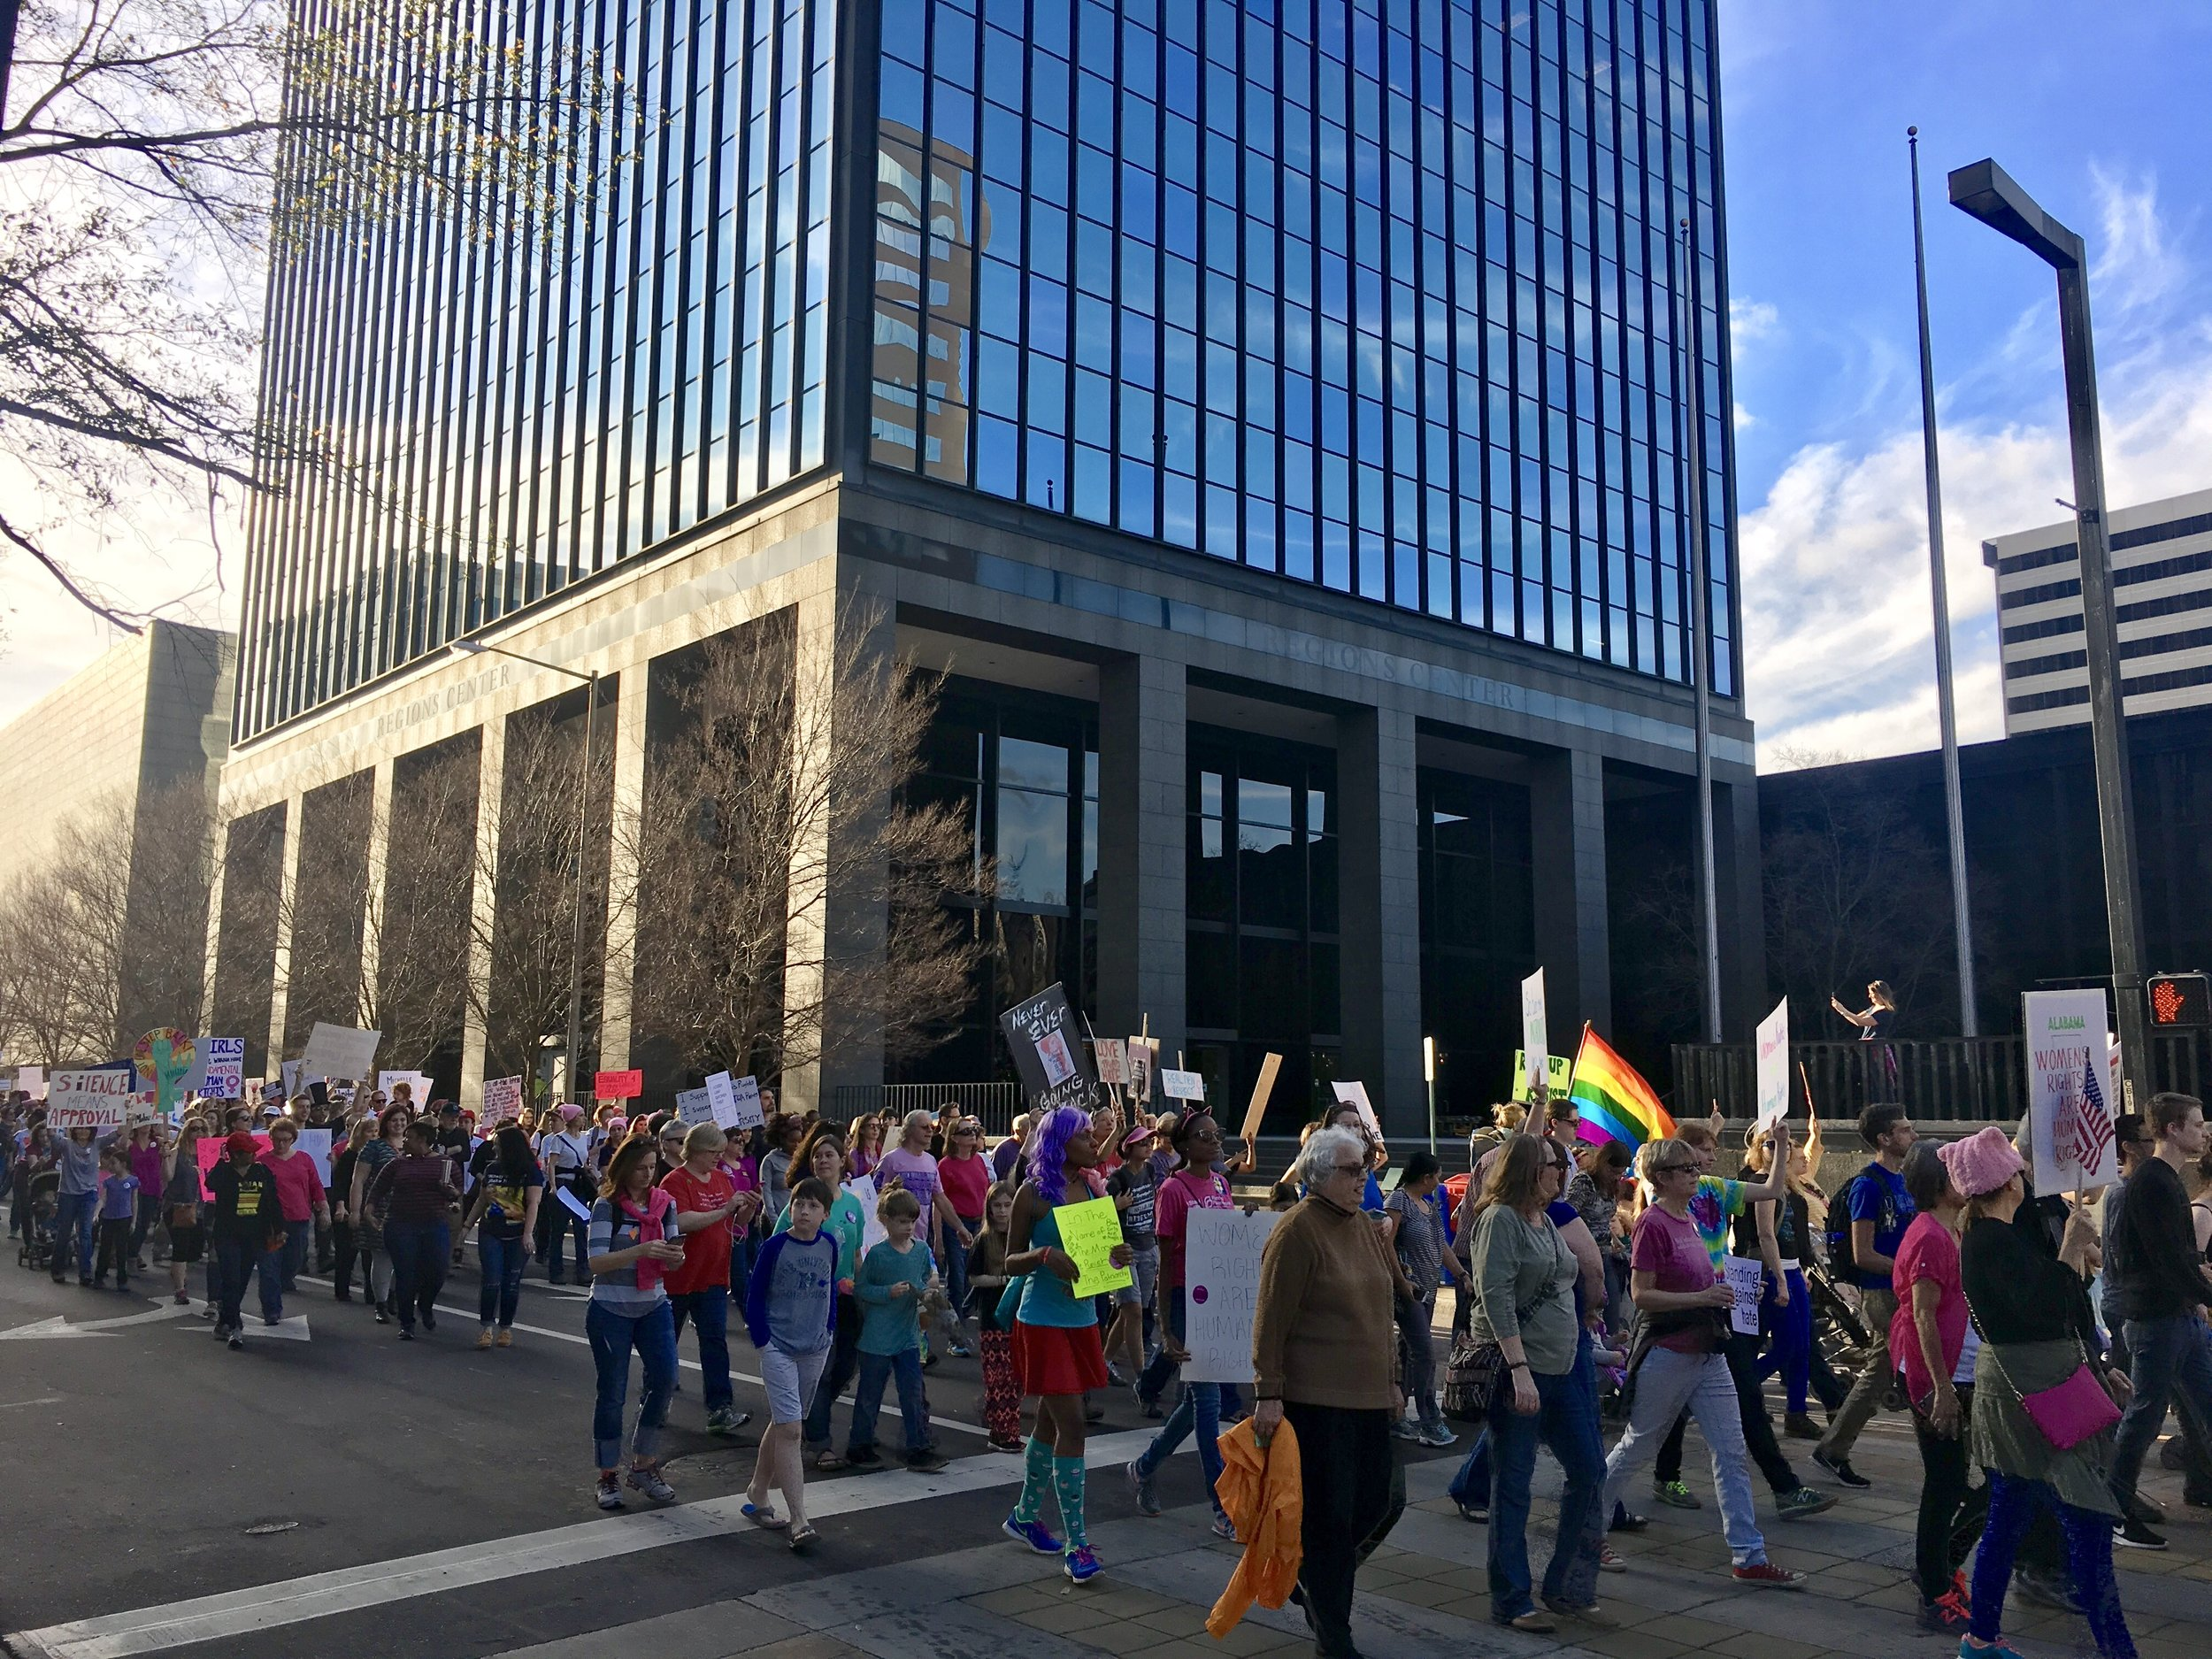 I was in Birmingham, AL, the day of the Women's March in January. It was an awesome turnout, and so inspiring to see the south show up in droves.